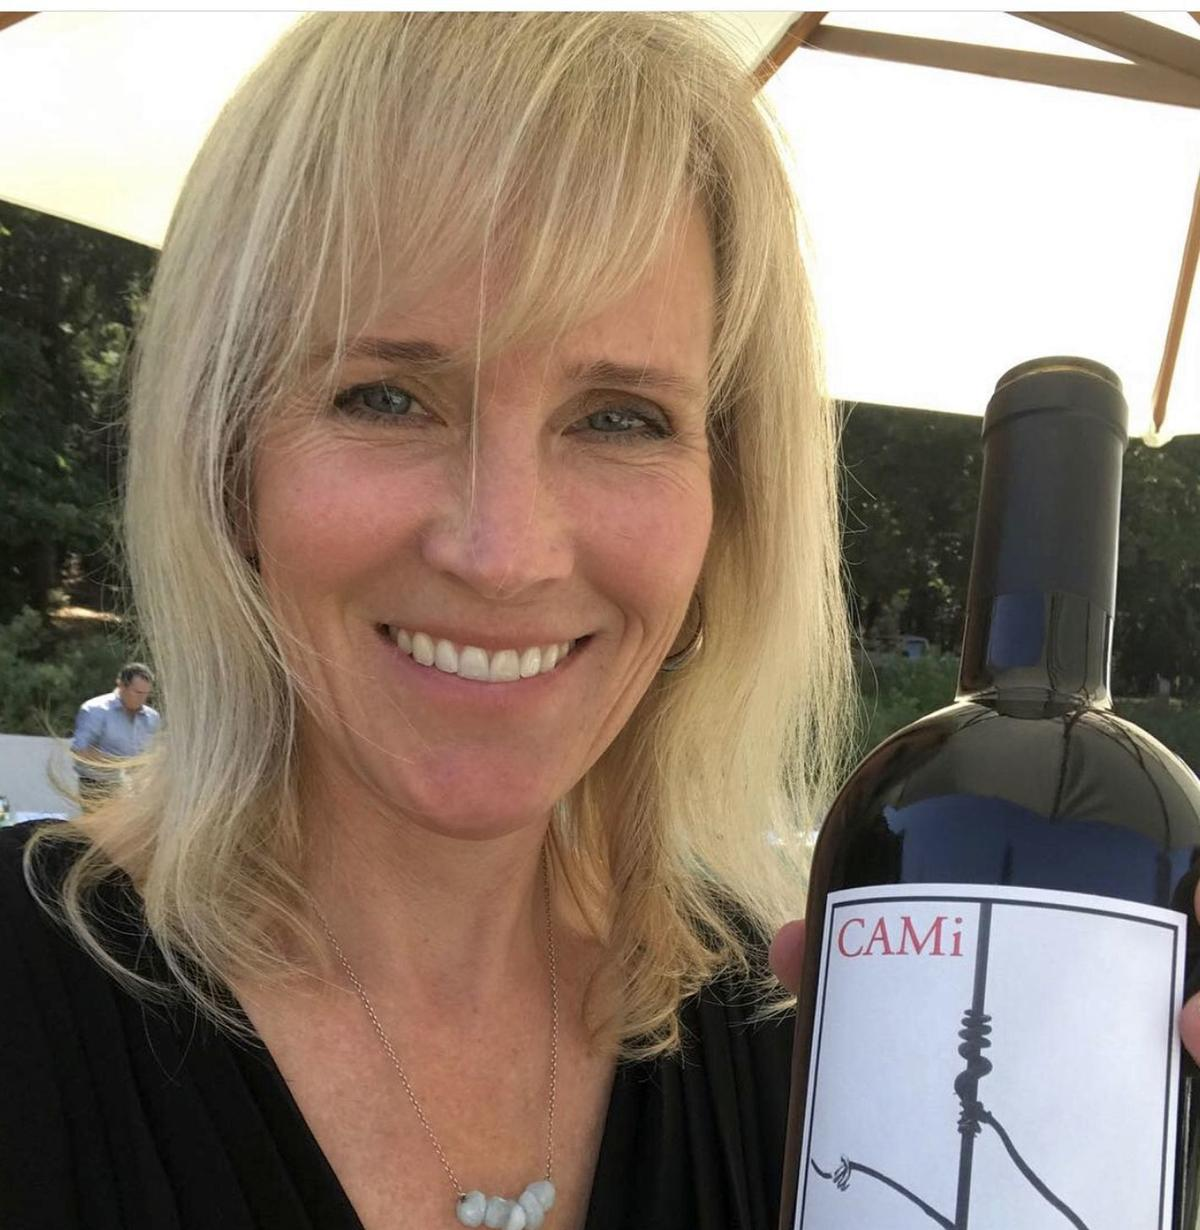 Laurie Shelton, owner of CAMi Vineyards